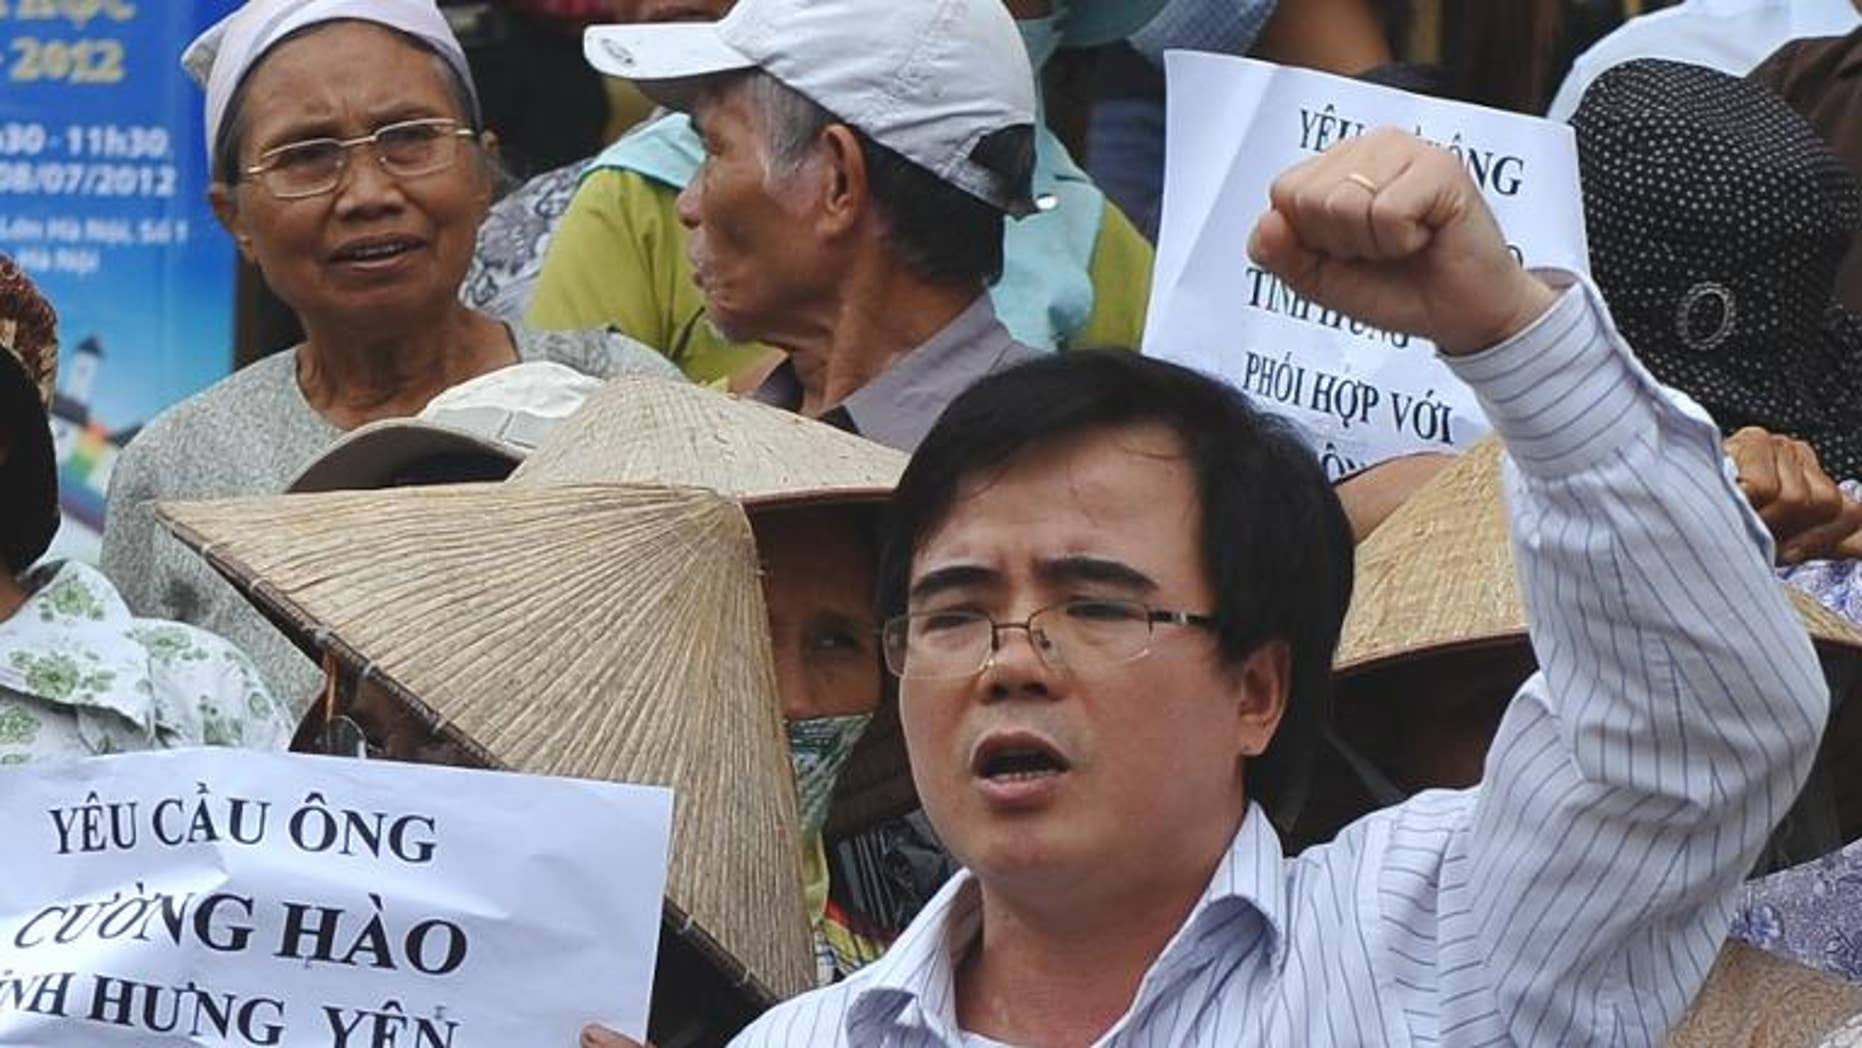 This picture taken on July 8, 2012 shows lawyer Le Quoc Quan (C) shouting during an anti-China rally in Hanoi